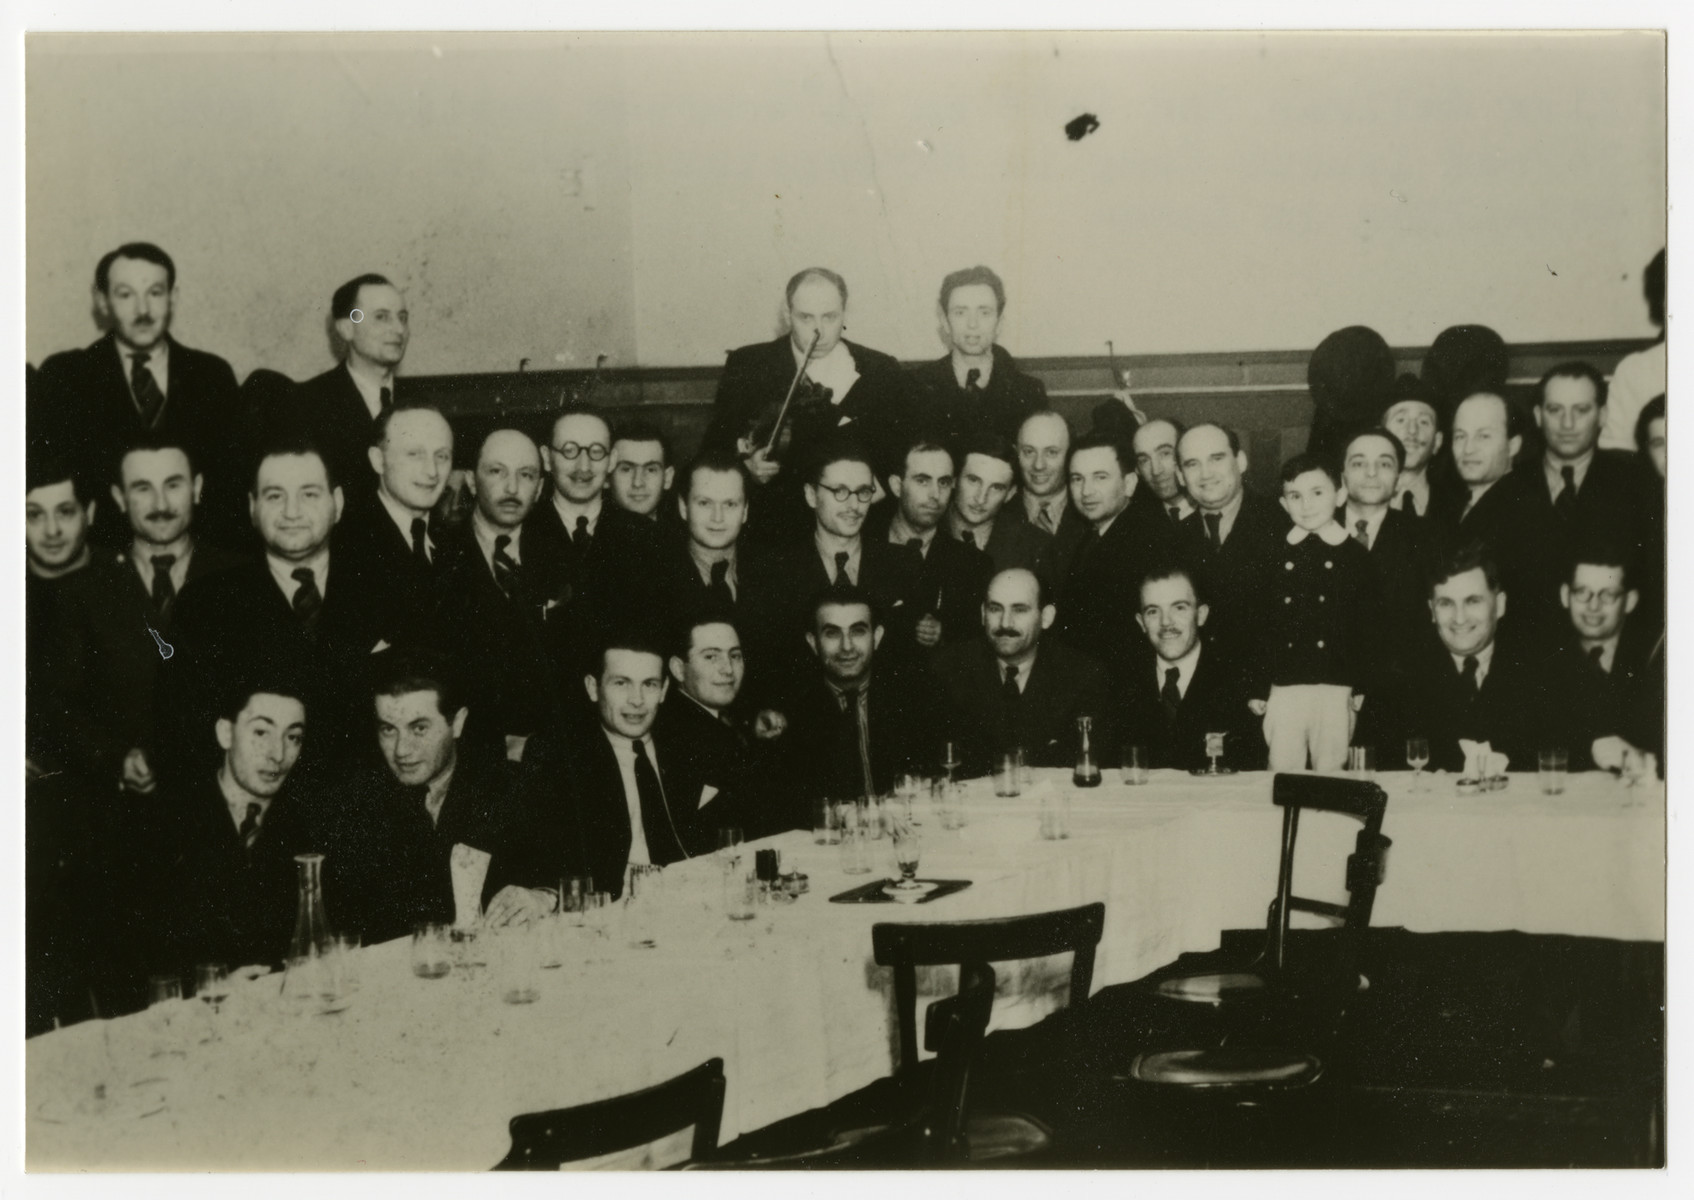 Hungarian Jewish men who had served together in the Sarospatak labor camp gather for a meeting at the Hotel Schalkhaz in Kosice.  Alex Gellman is pictured in the middle row, second from the left.